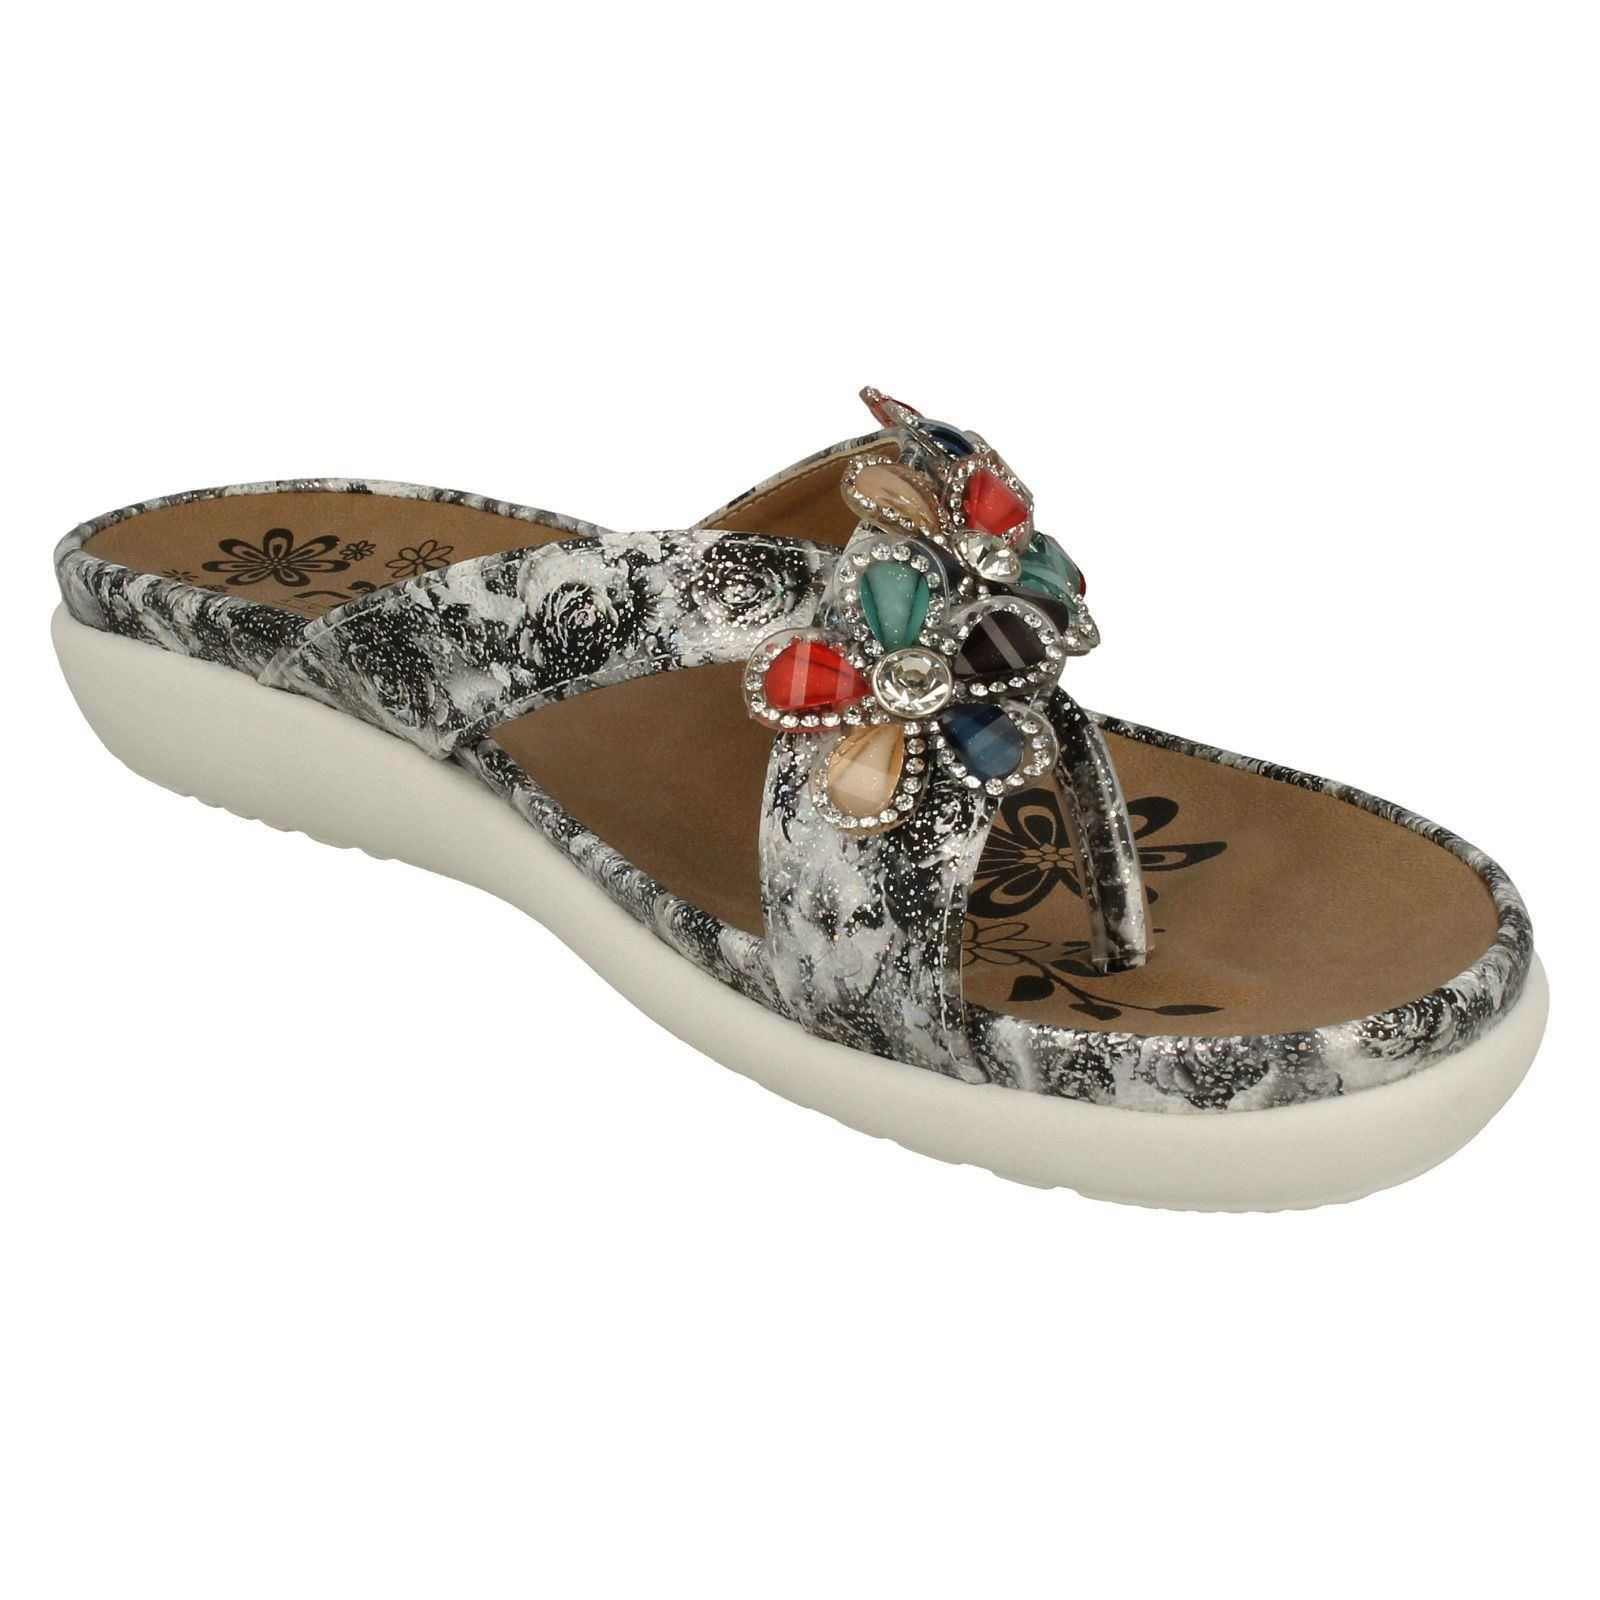 Grey Slip Elegant On Ladies Sandal Toe Rieker Mule Post V9591 z7qxTFx